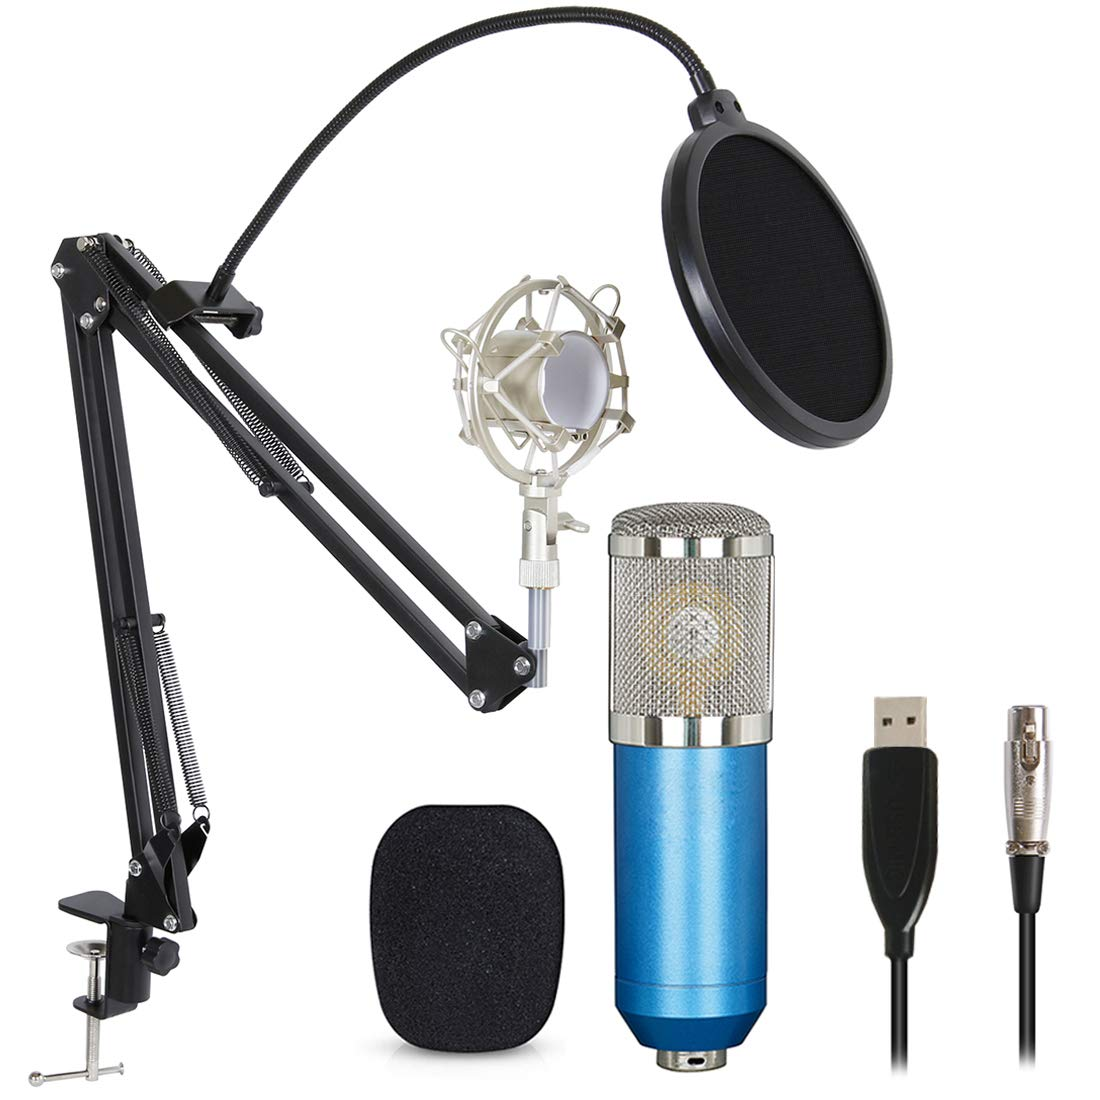 Professional USB Condenser Microphone Bundle,BM800 XLR 3 Pin Mic Kit With Adjustable Boom Scissor Arm Stand,Shock Mount,Pop Filter USB Audio Cable For Computer Youtube Singing Studio Recording & Bro